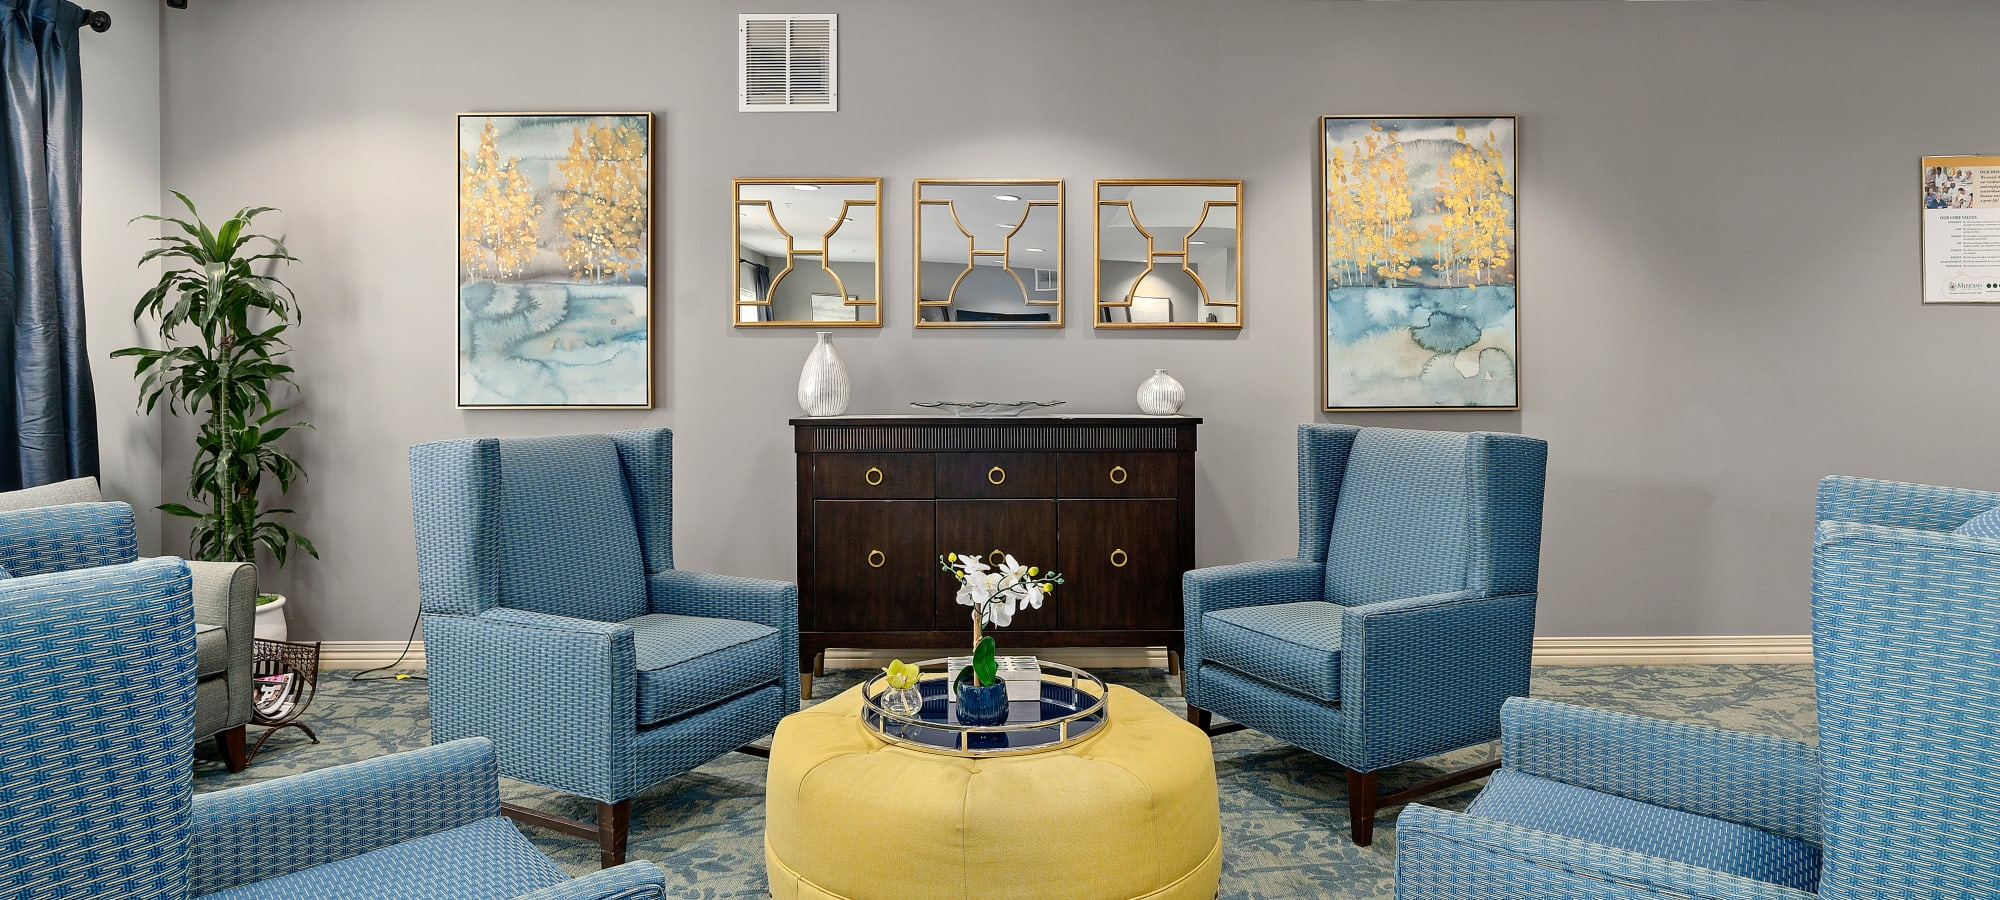 Common Area Image of Gentry Park Assisted Living Gentry Park Orlando in Orlando, Florida